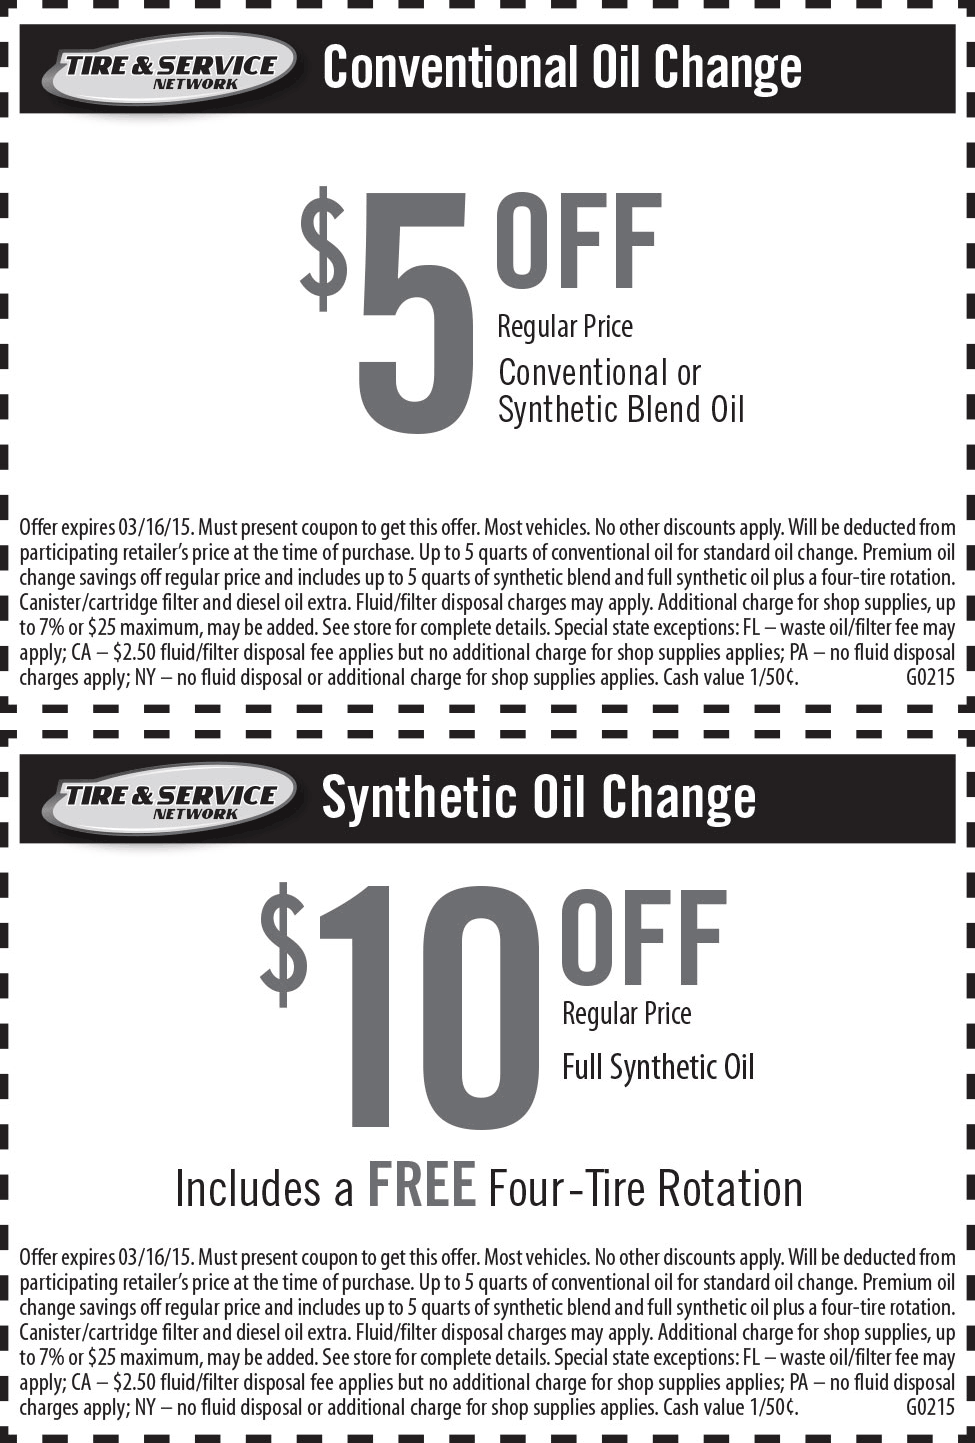 Goodyear Coupon November 2017 $5-10 off an oil change at Goodyear